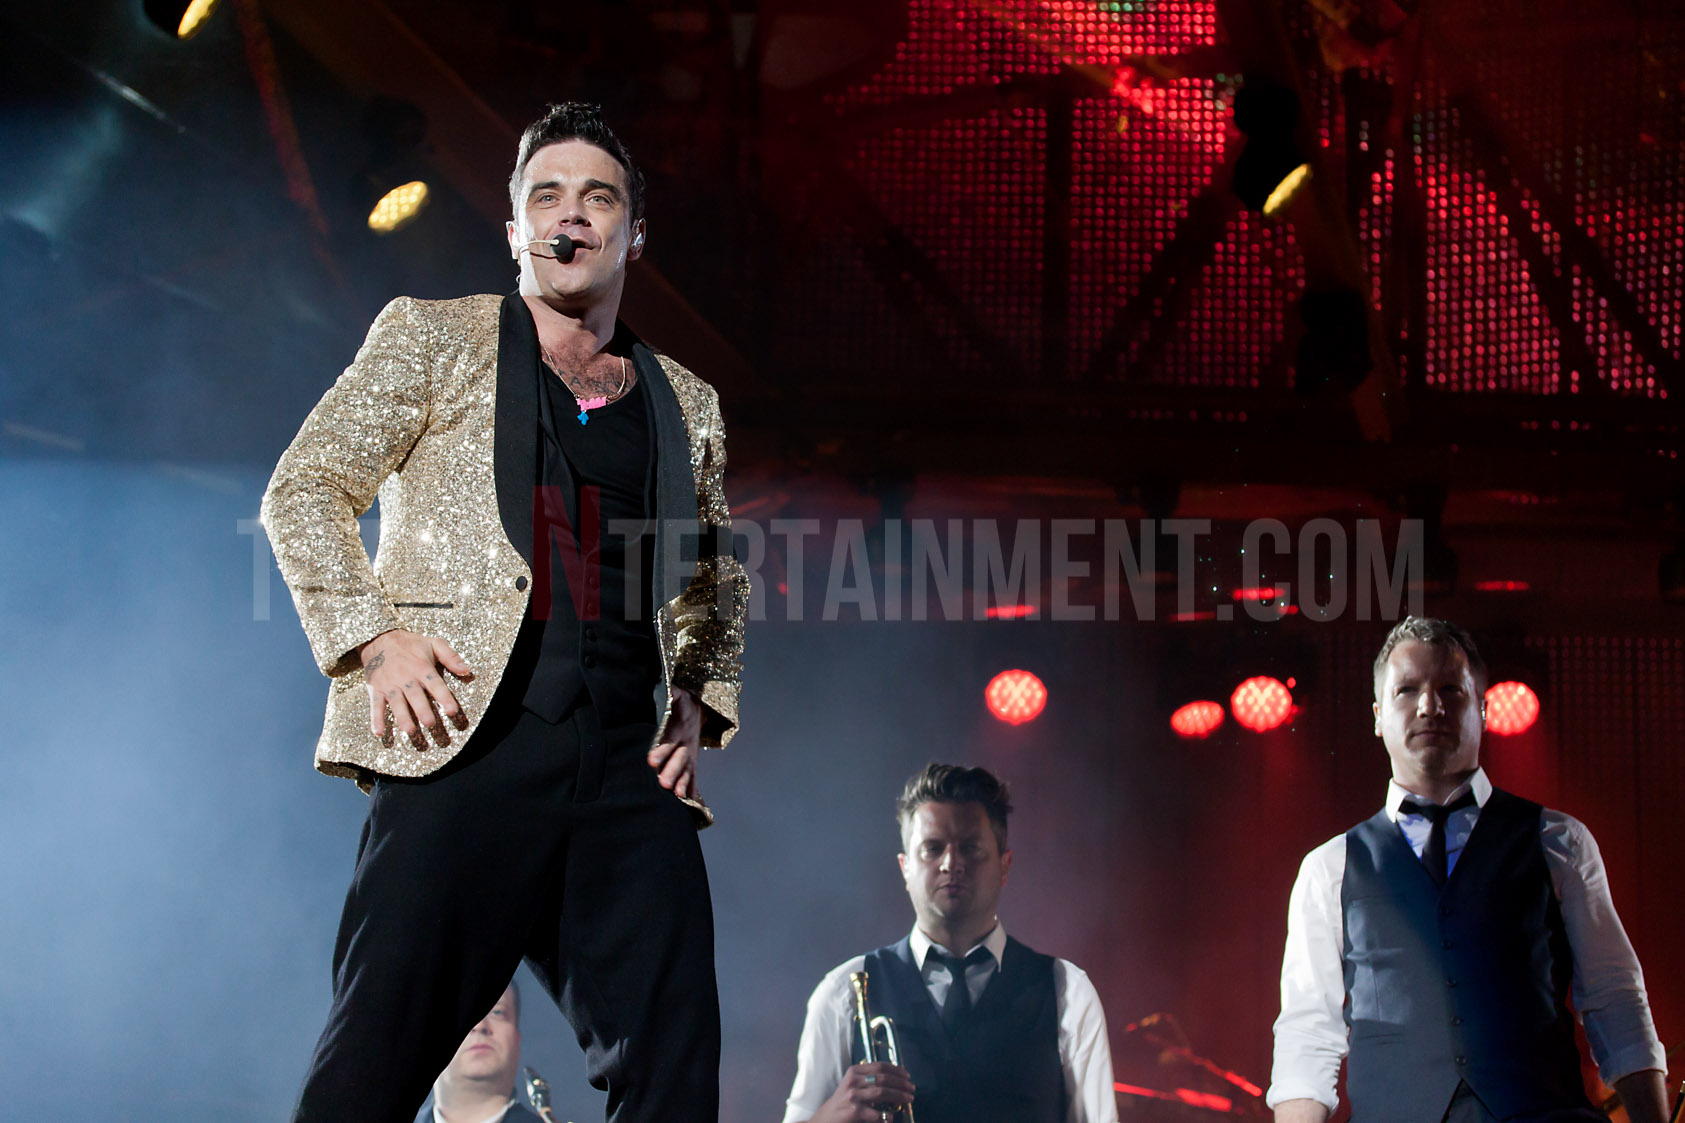 Robbie Williams, Heavy Entertainment, totalntertainment, Manchester, Etihad